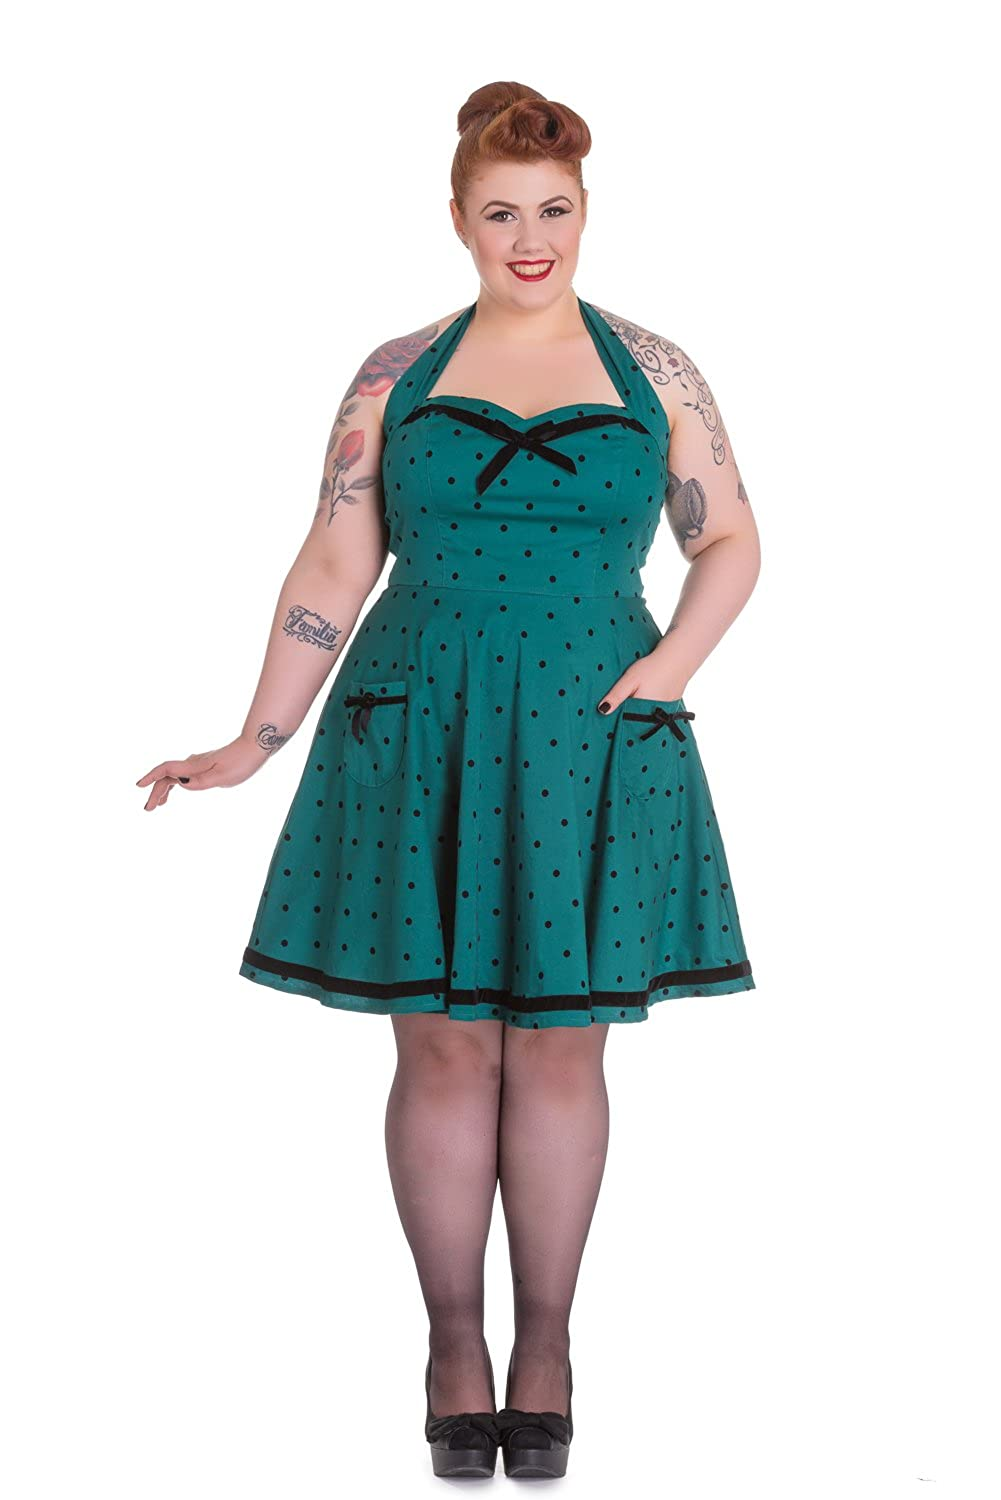 a2a2df5c29bba Hell Bunny Plus Jolene Pinup Rockabilly Teal Green Polka Dot Mini Dress  (XXL) at Amazon Women s Clothing store